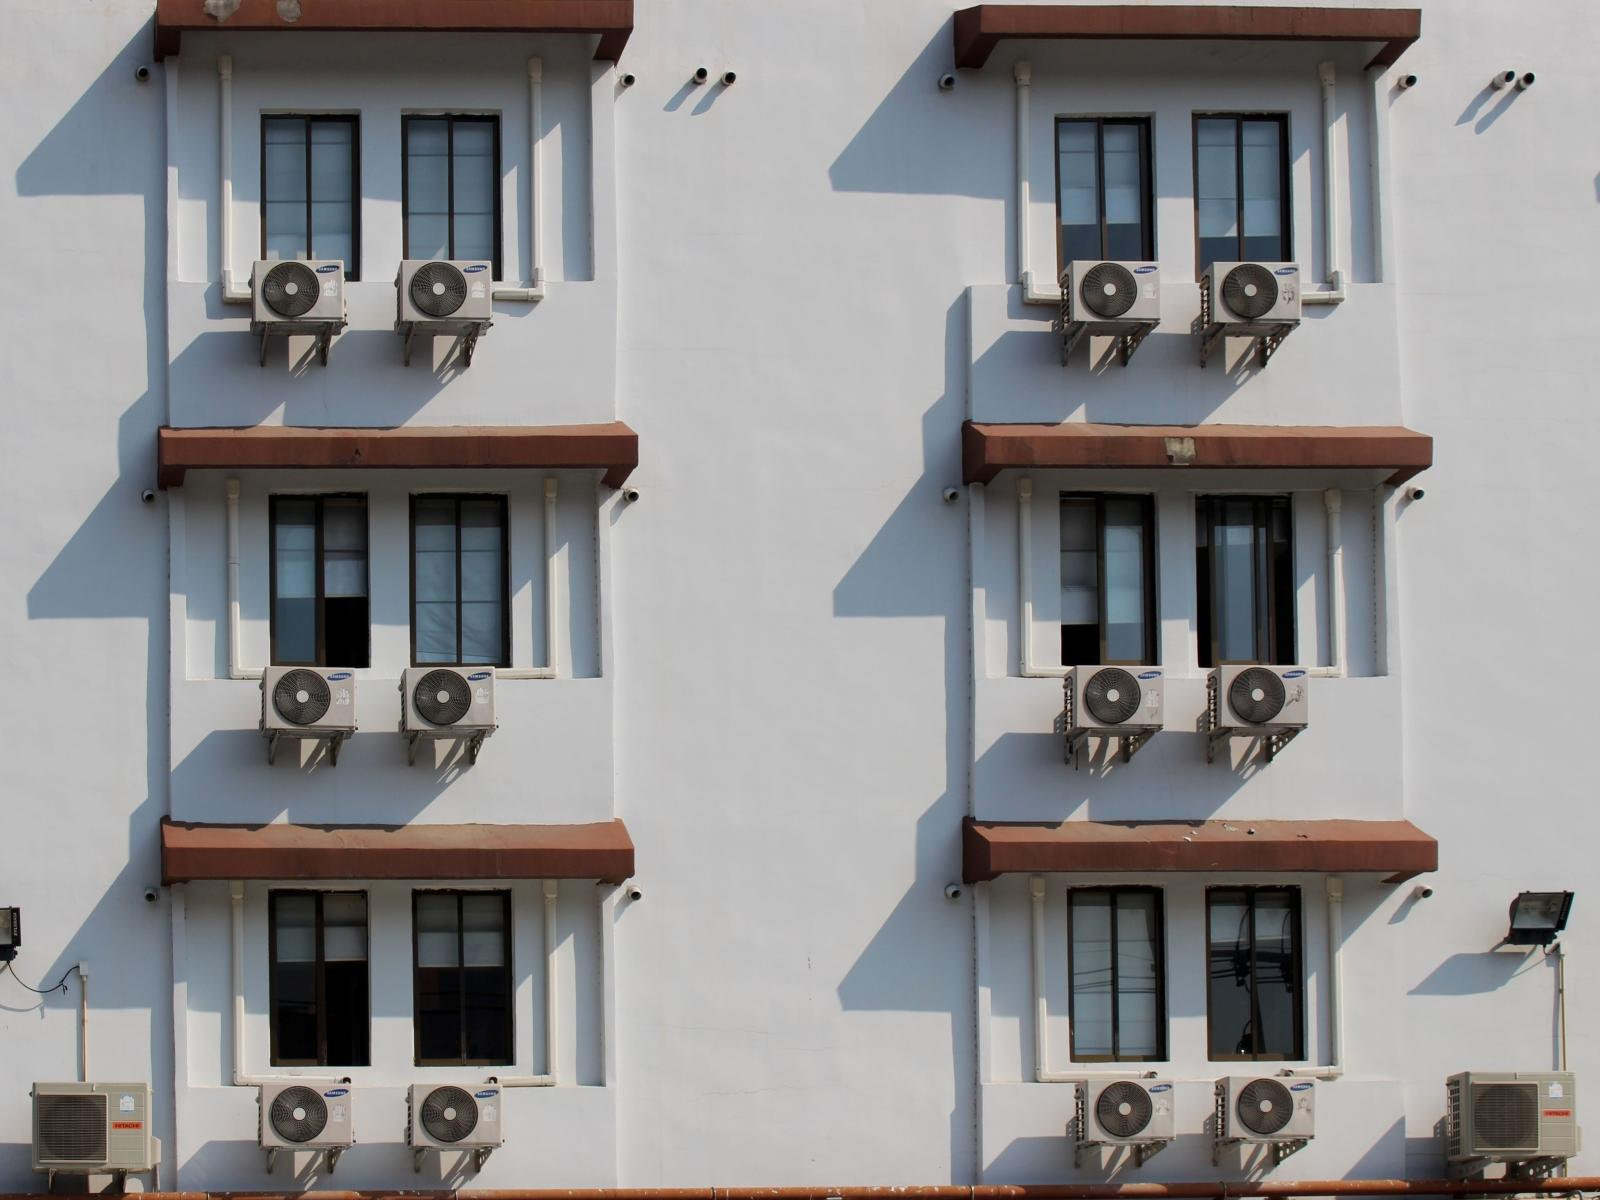 Air conditioning units sit outside a hotel building face, one attached to each window.